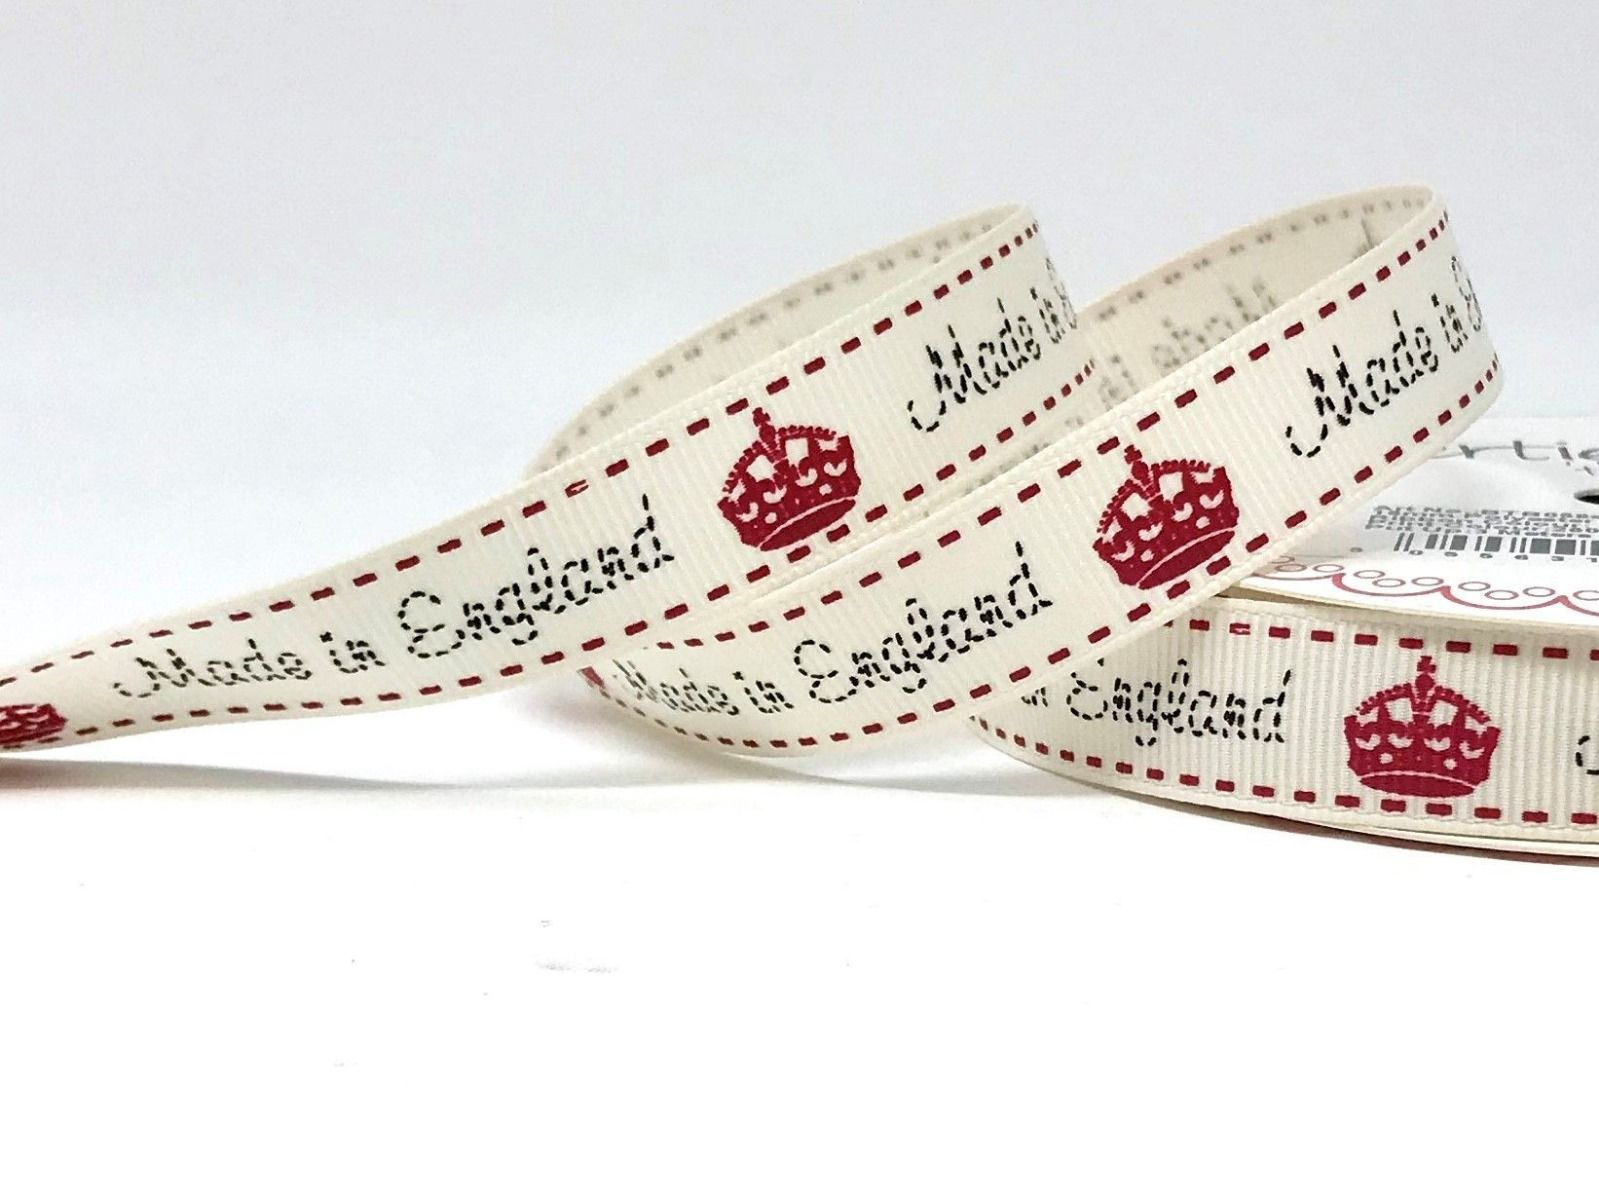 Berties Bows - Made In England On Grosgrain Ribbon - 16mm Wide